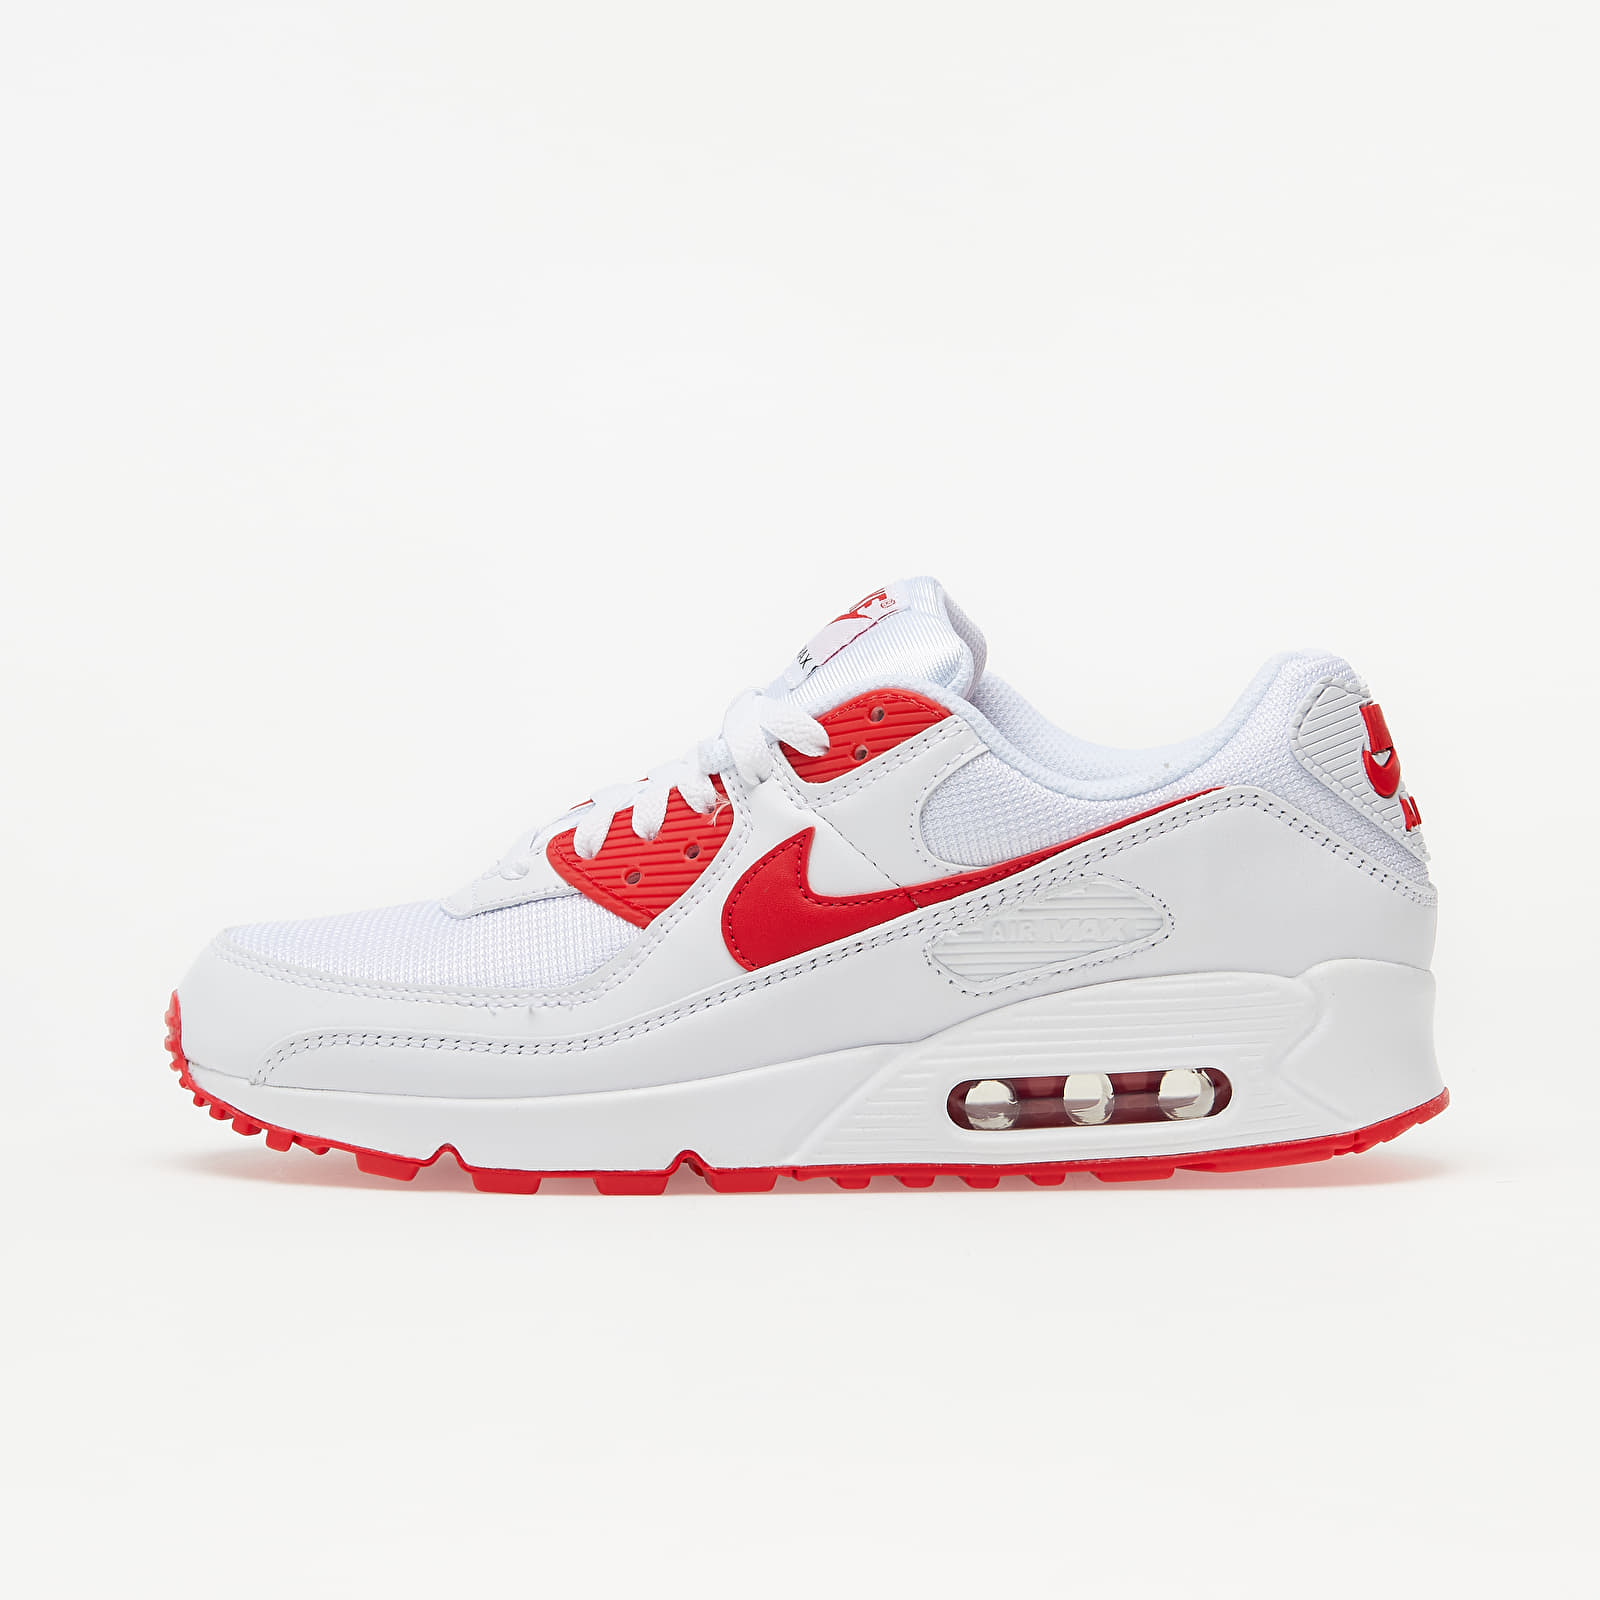 Nike Air Max 90 White/ Hyper Red-Black EUR 45.5